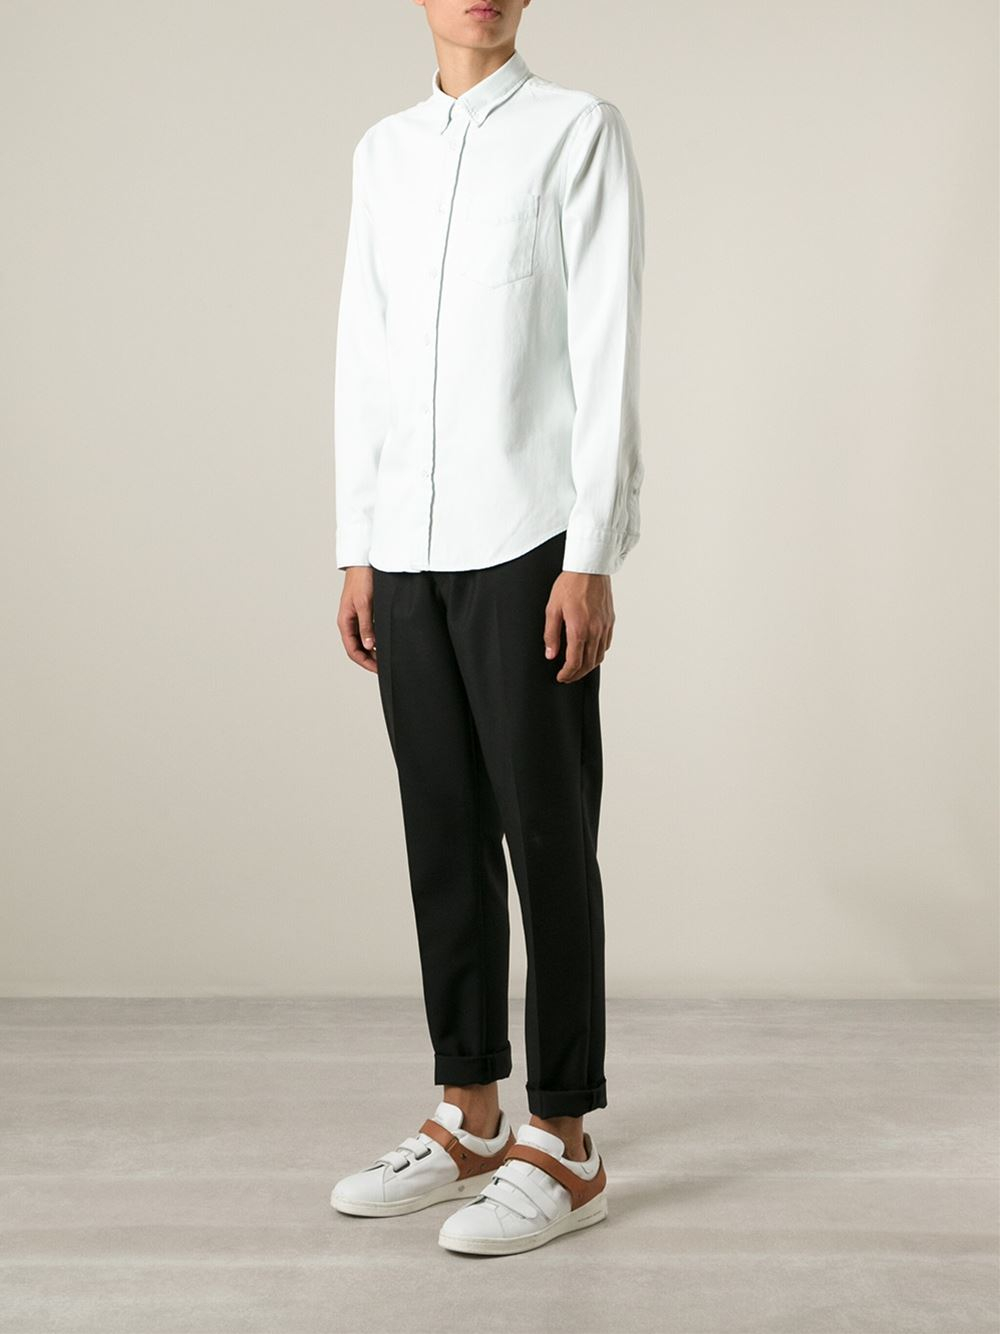 Isherwood in White Acne Studios Limited Edition Cheap Price Discount Recommend Clearance Discount 4S7ktVTi